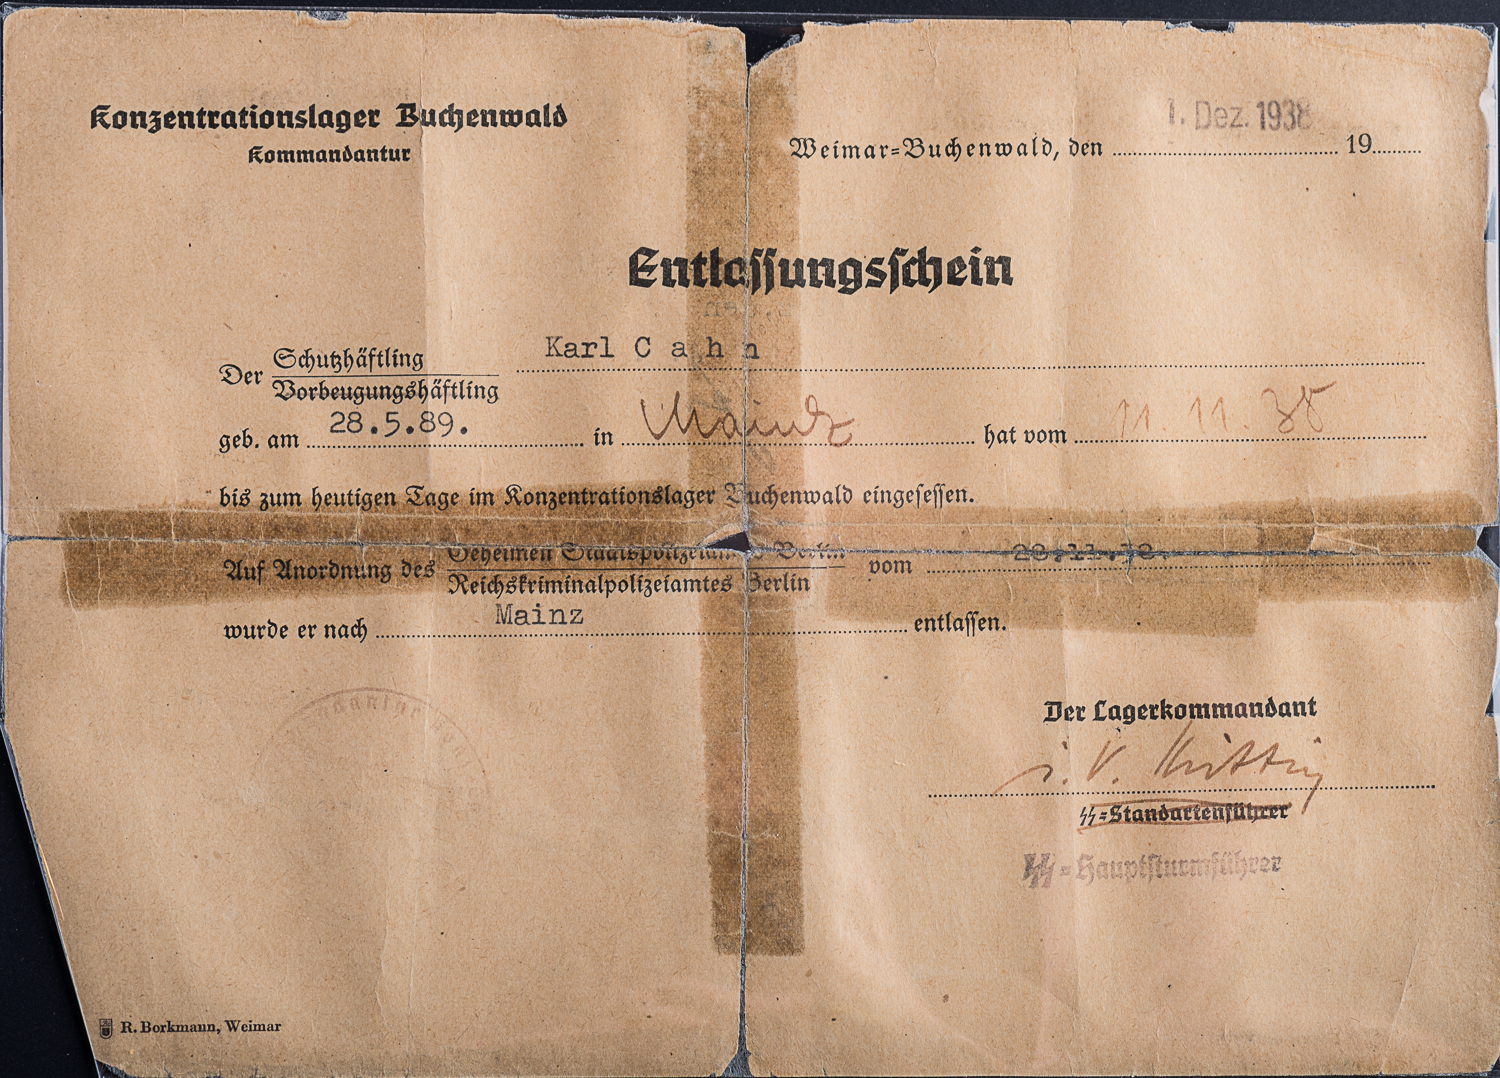 This discharge certificate allowed for the liberation of Karl Cahn from Buchenwald camp. (Photo: Peter Berra)